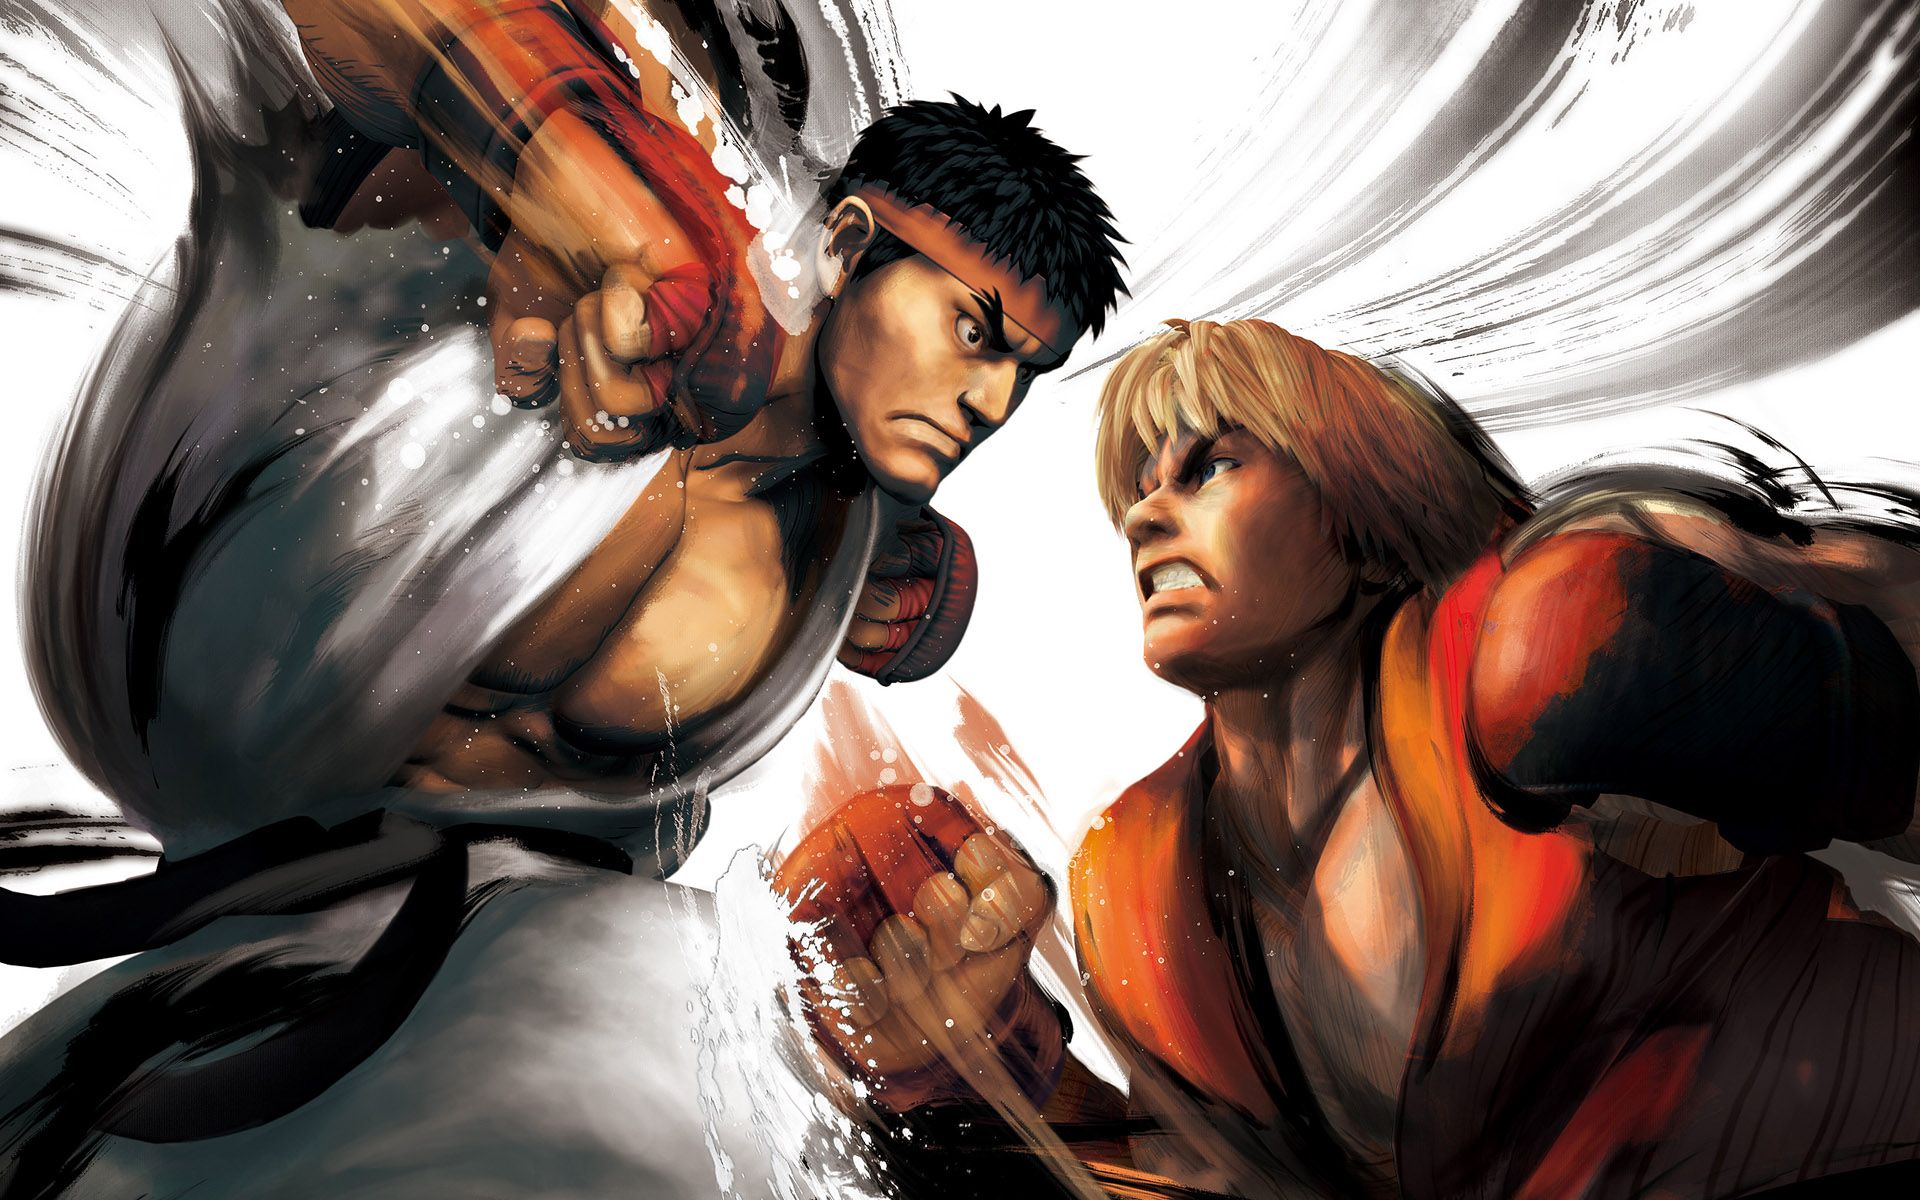 Street Fighter Battle of the Brothers